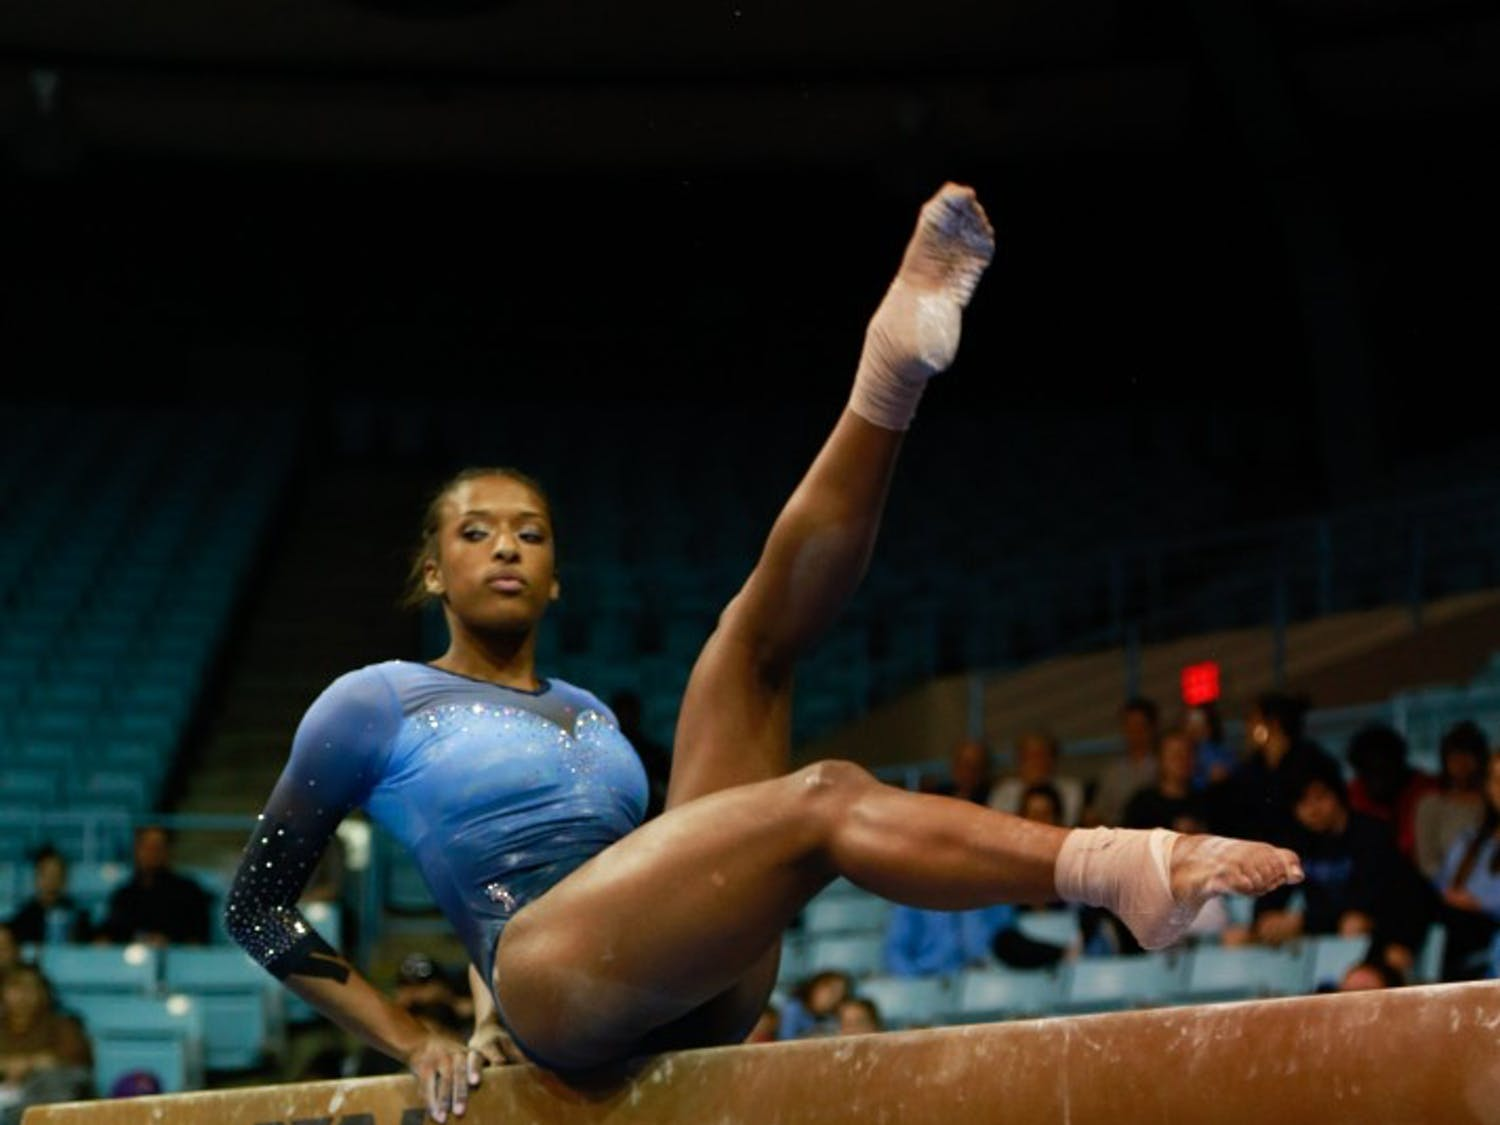 Sophomore Khazia Hislop competes in the beam event against Towson University on Saturday, Feb. 9, 2019 in Carmichael Arena.